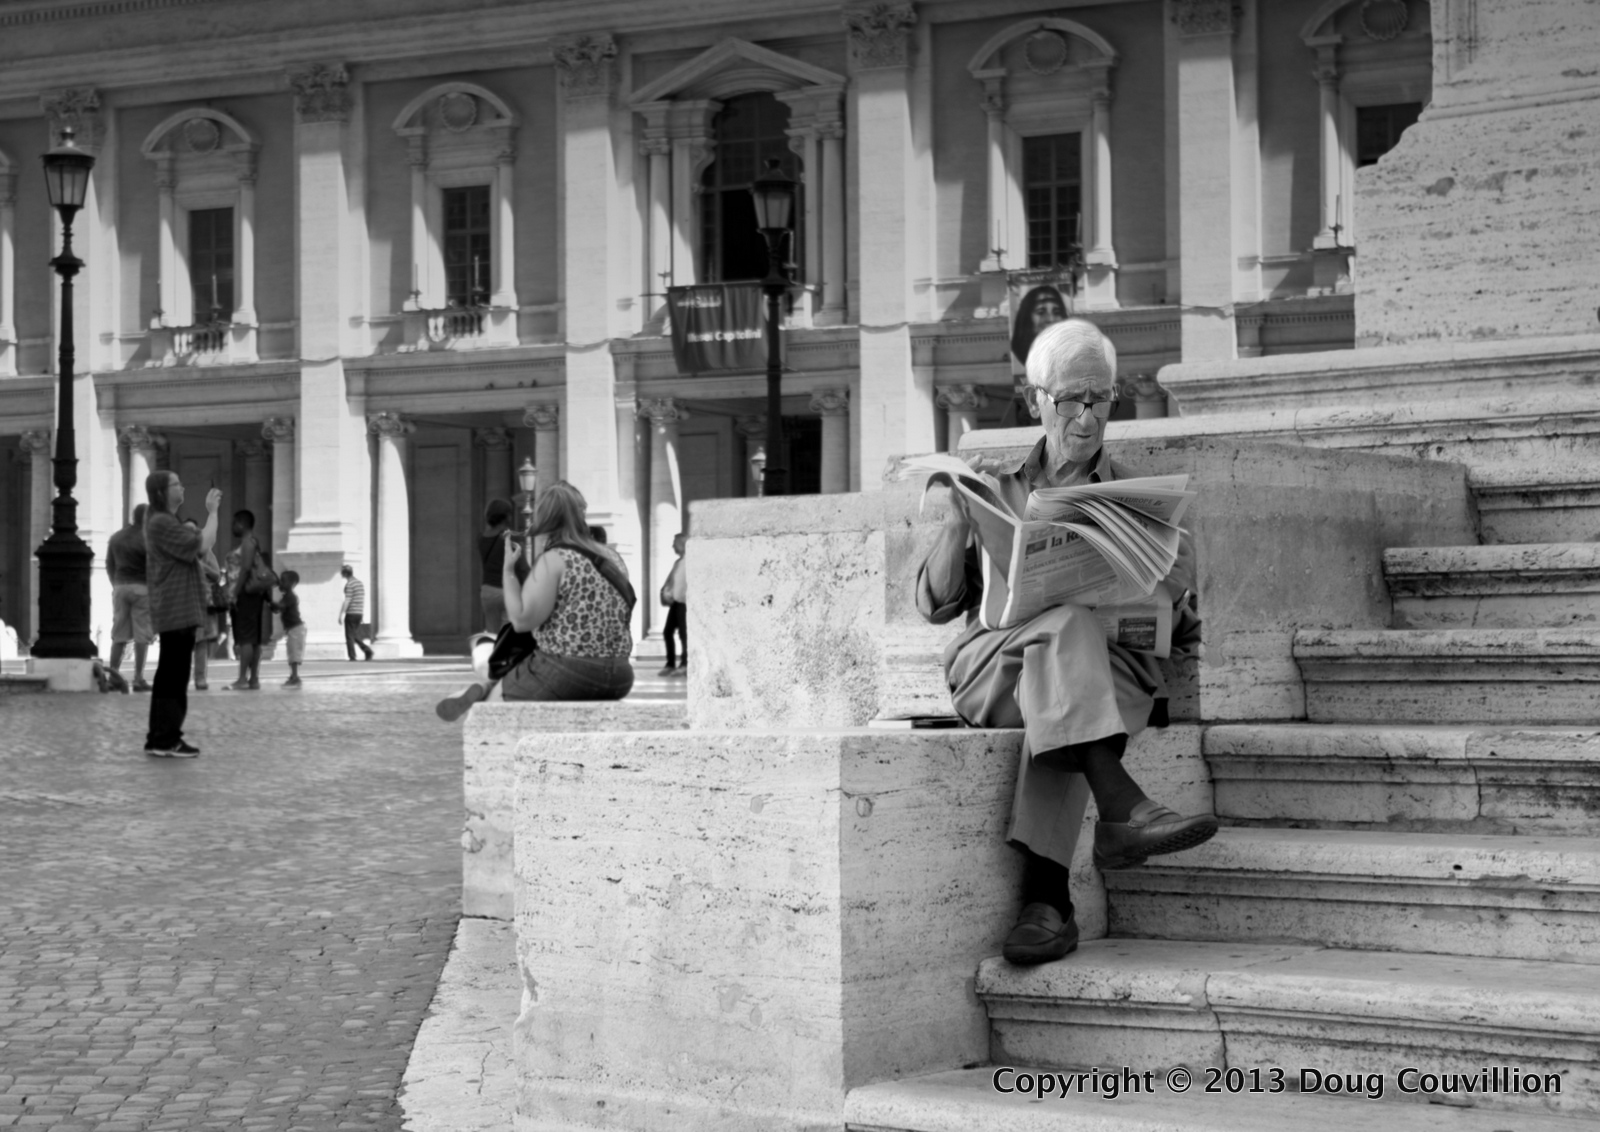 black and white photograph of a man reading the newspaper in Rome, Italy